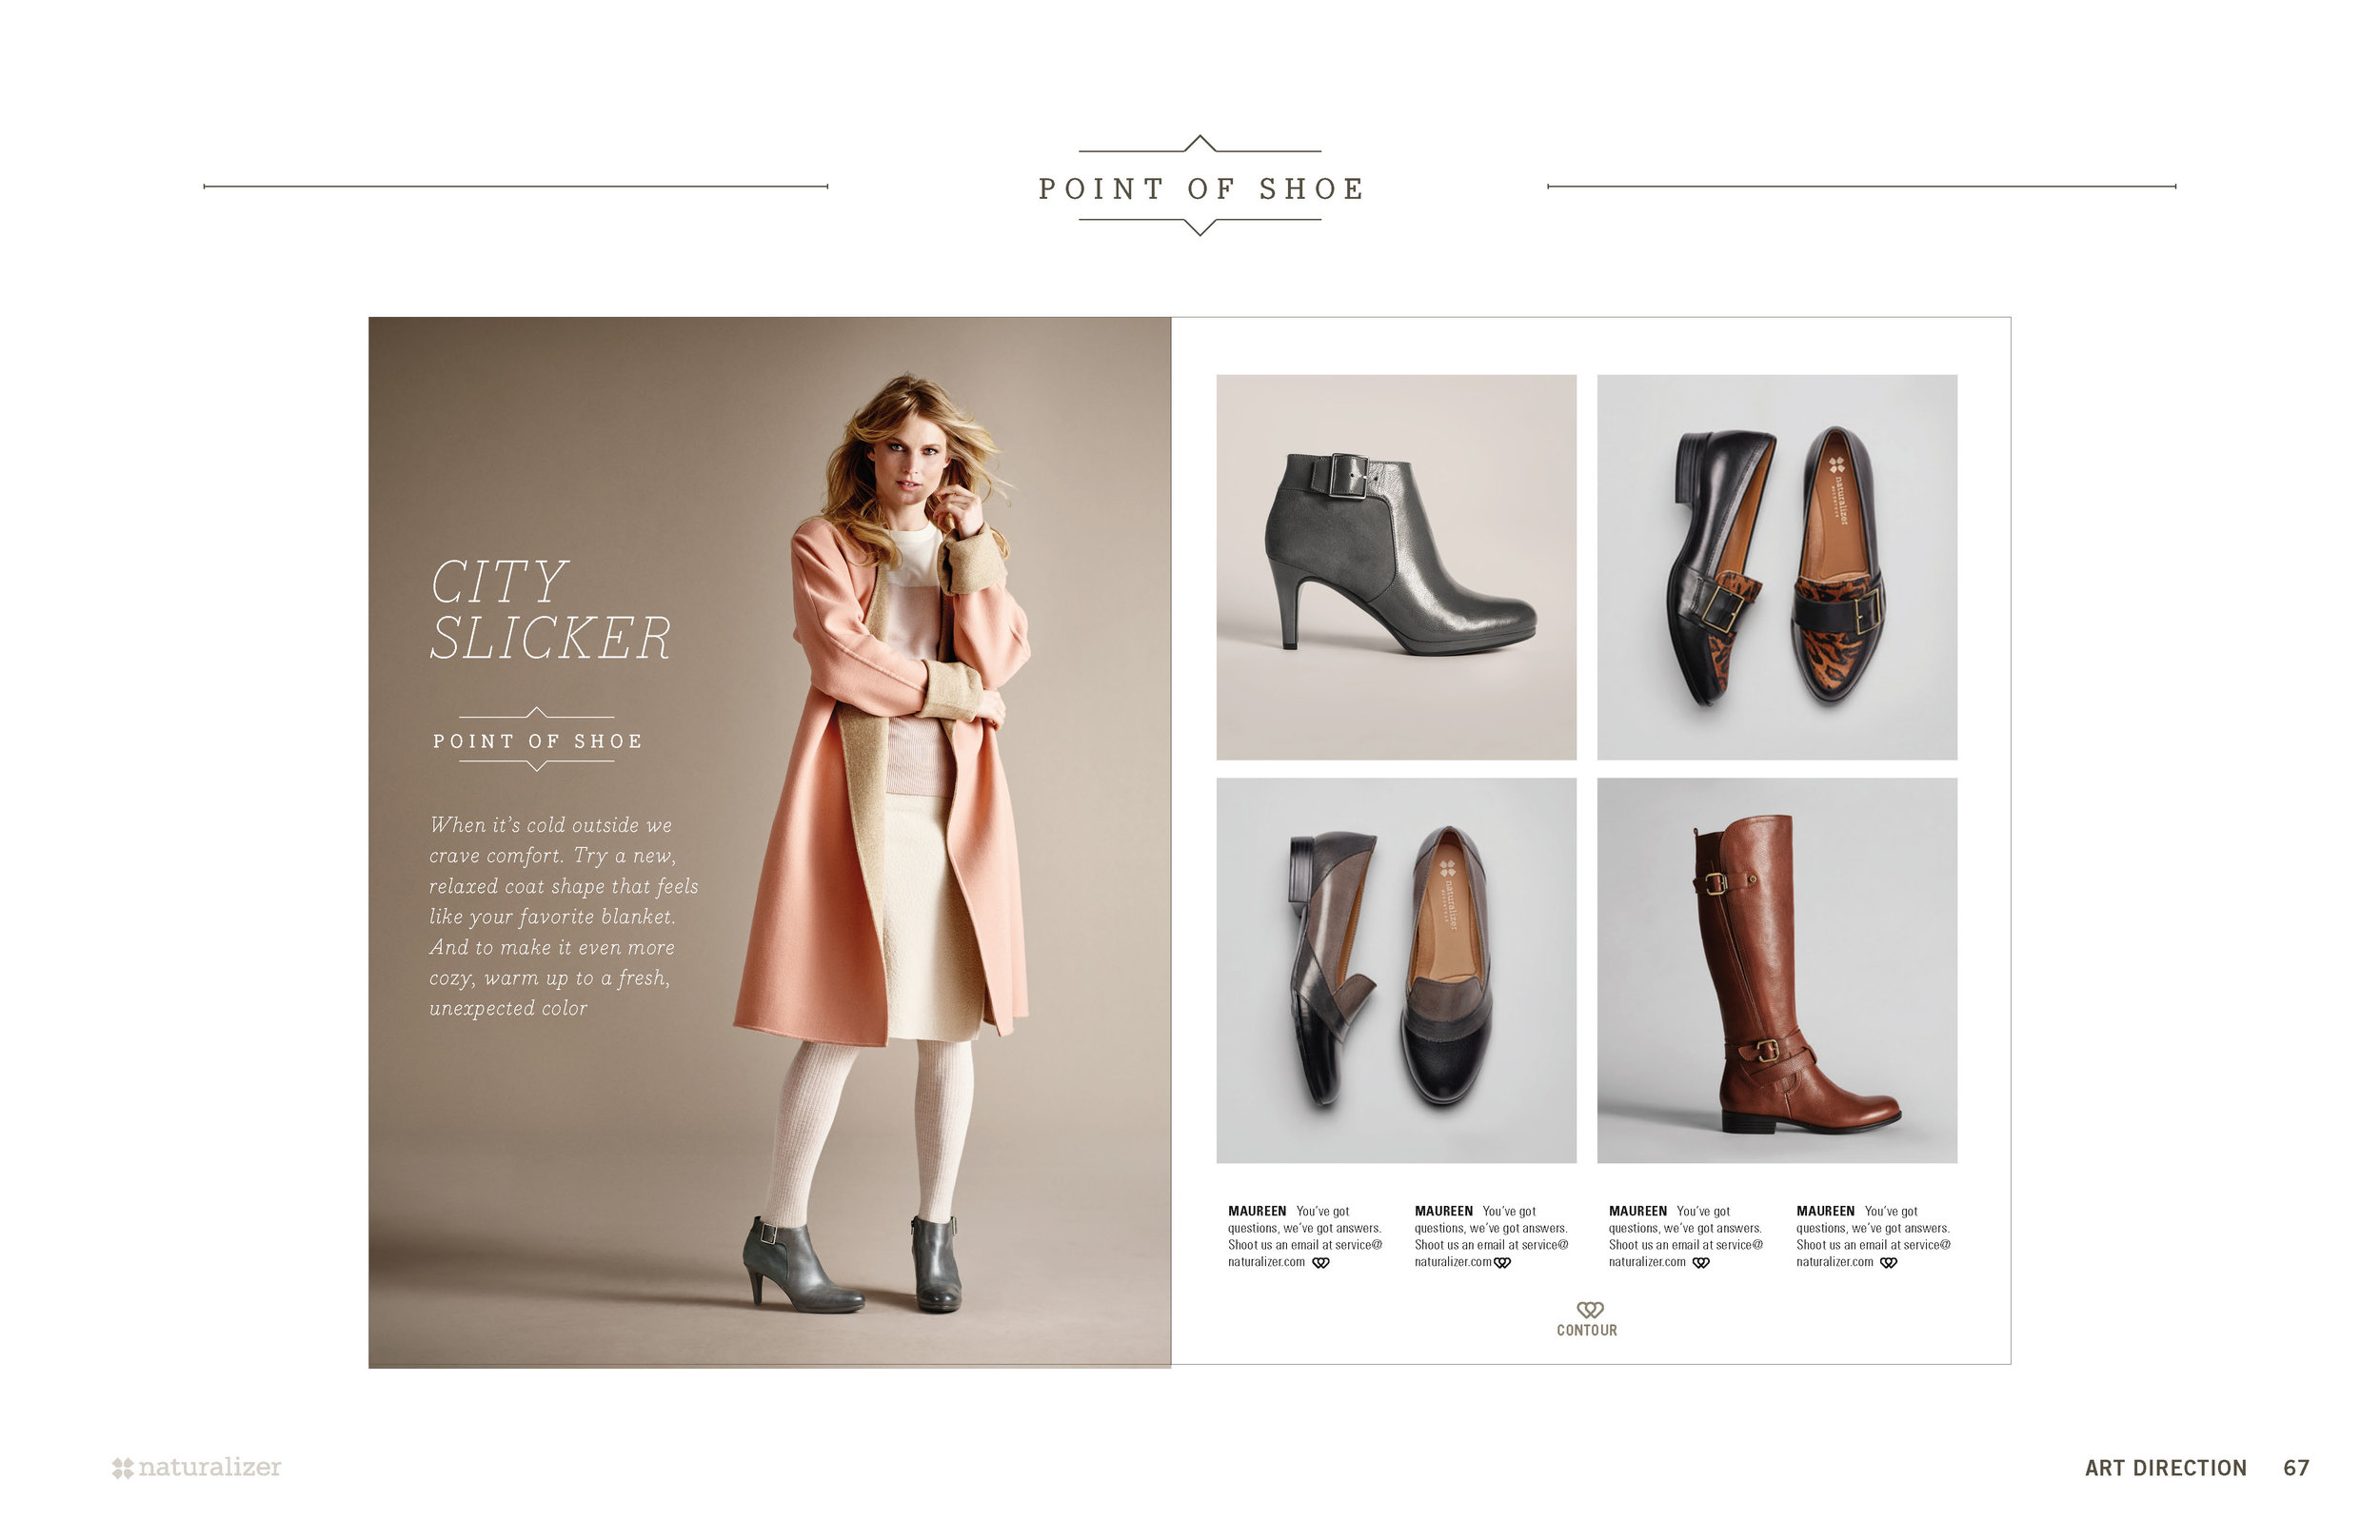 NATFW15 STYLE GUIDE CURRENT_Page_75.jpg